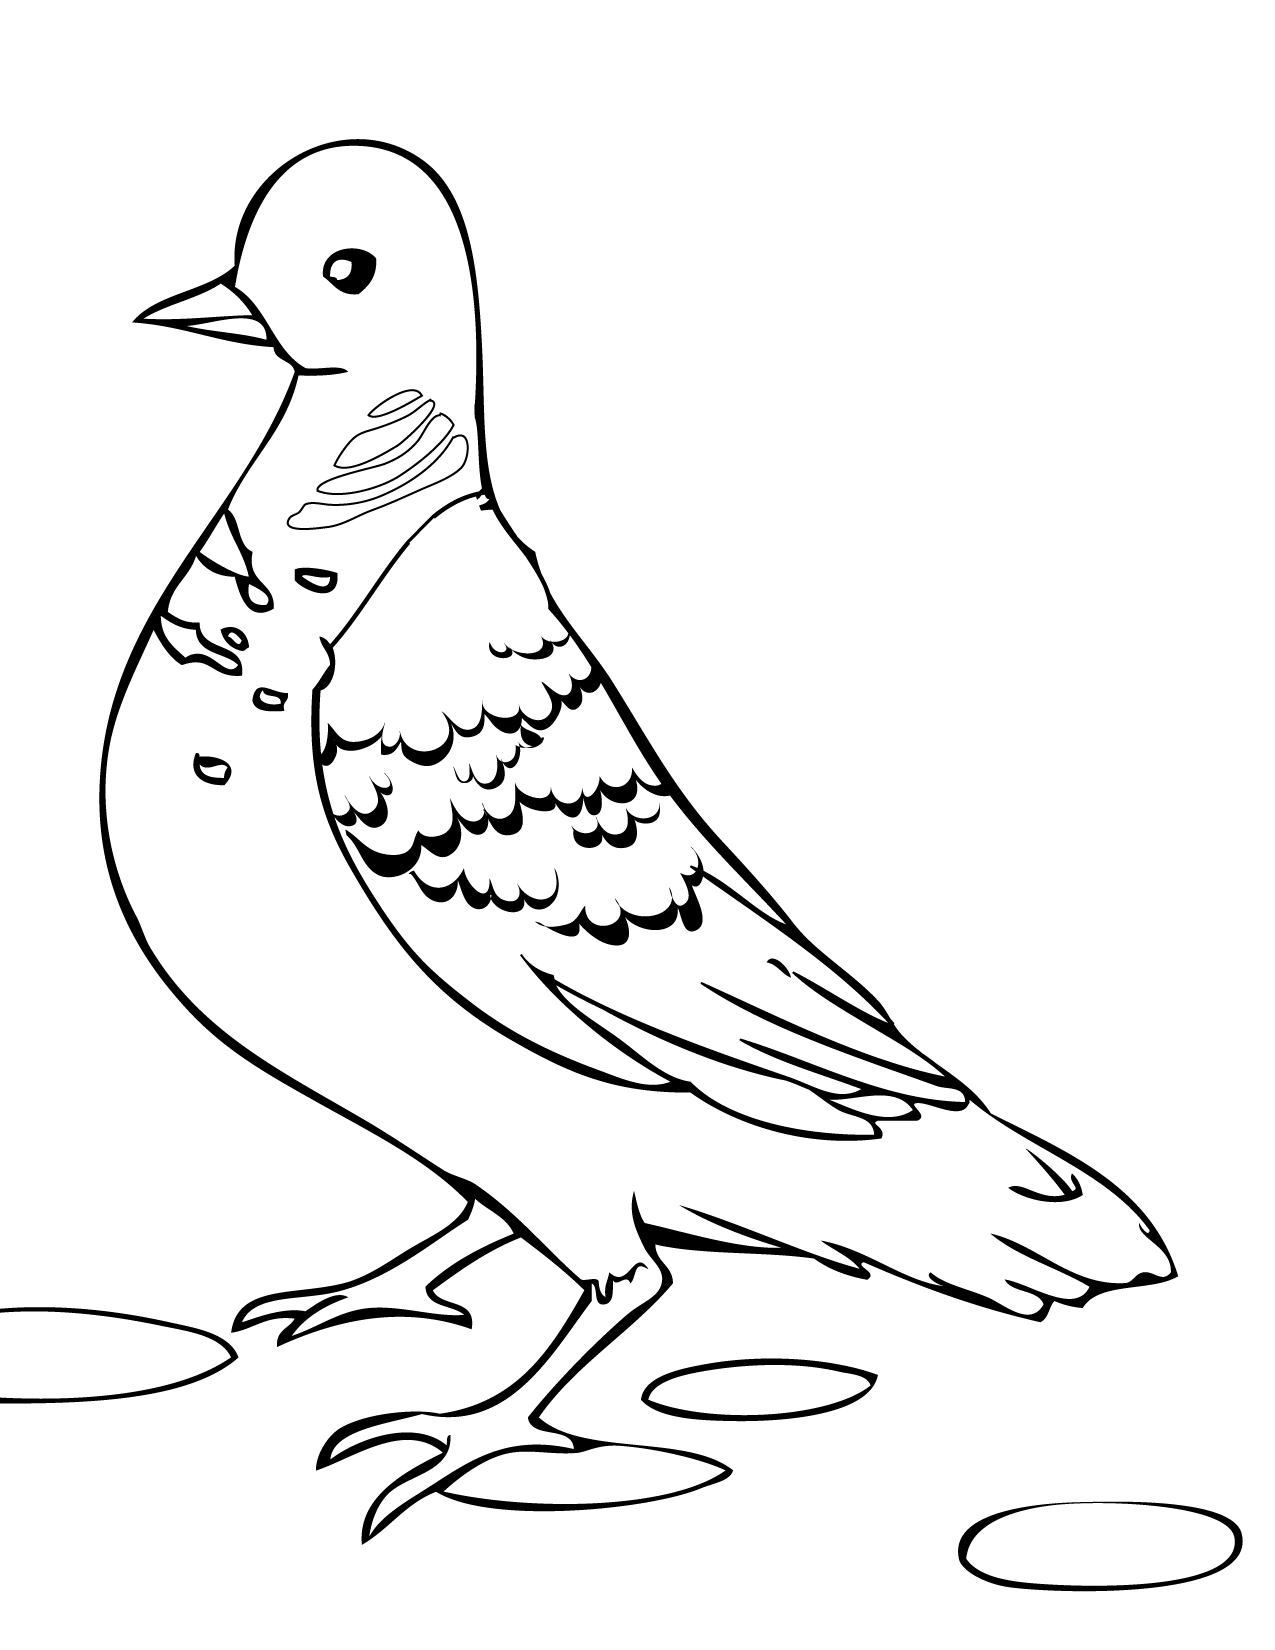 Turtle Dove coloring #16, Download drawings